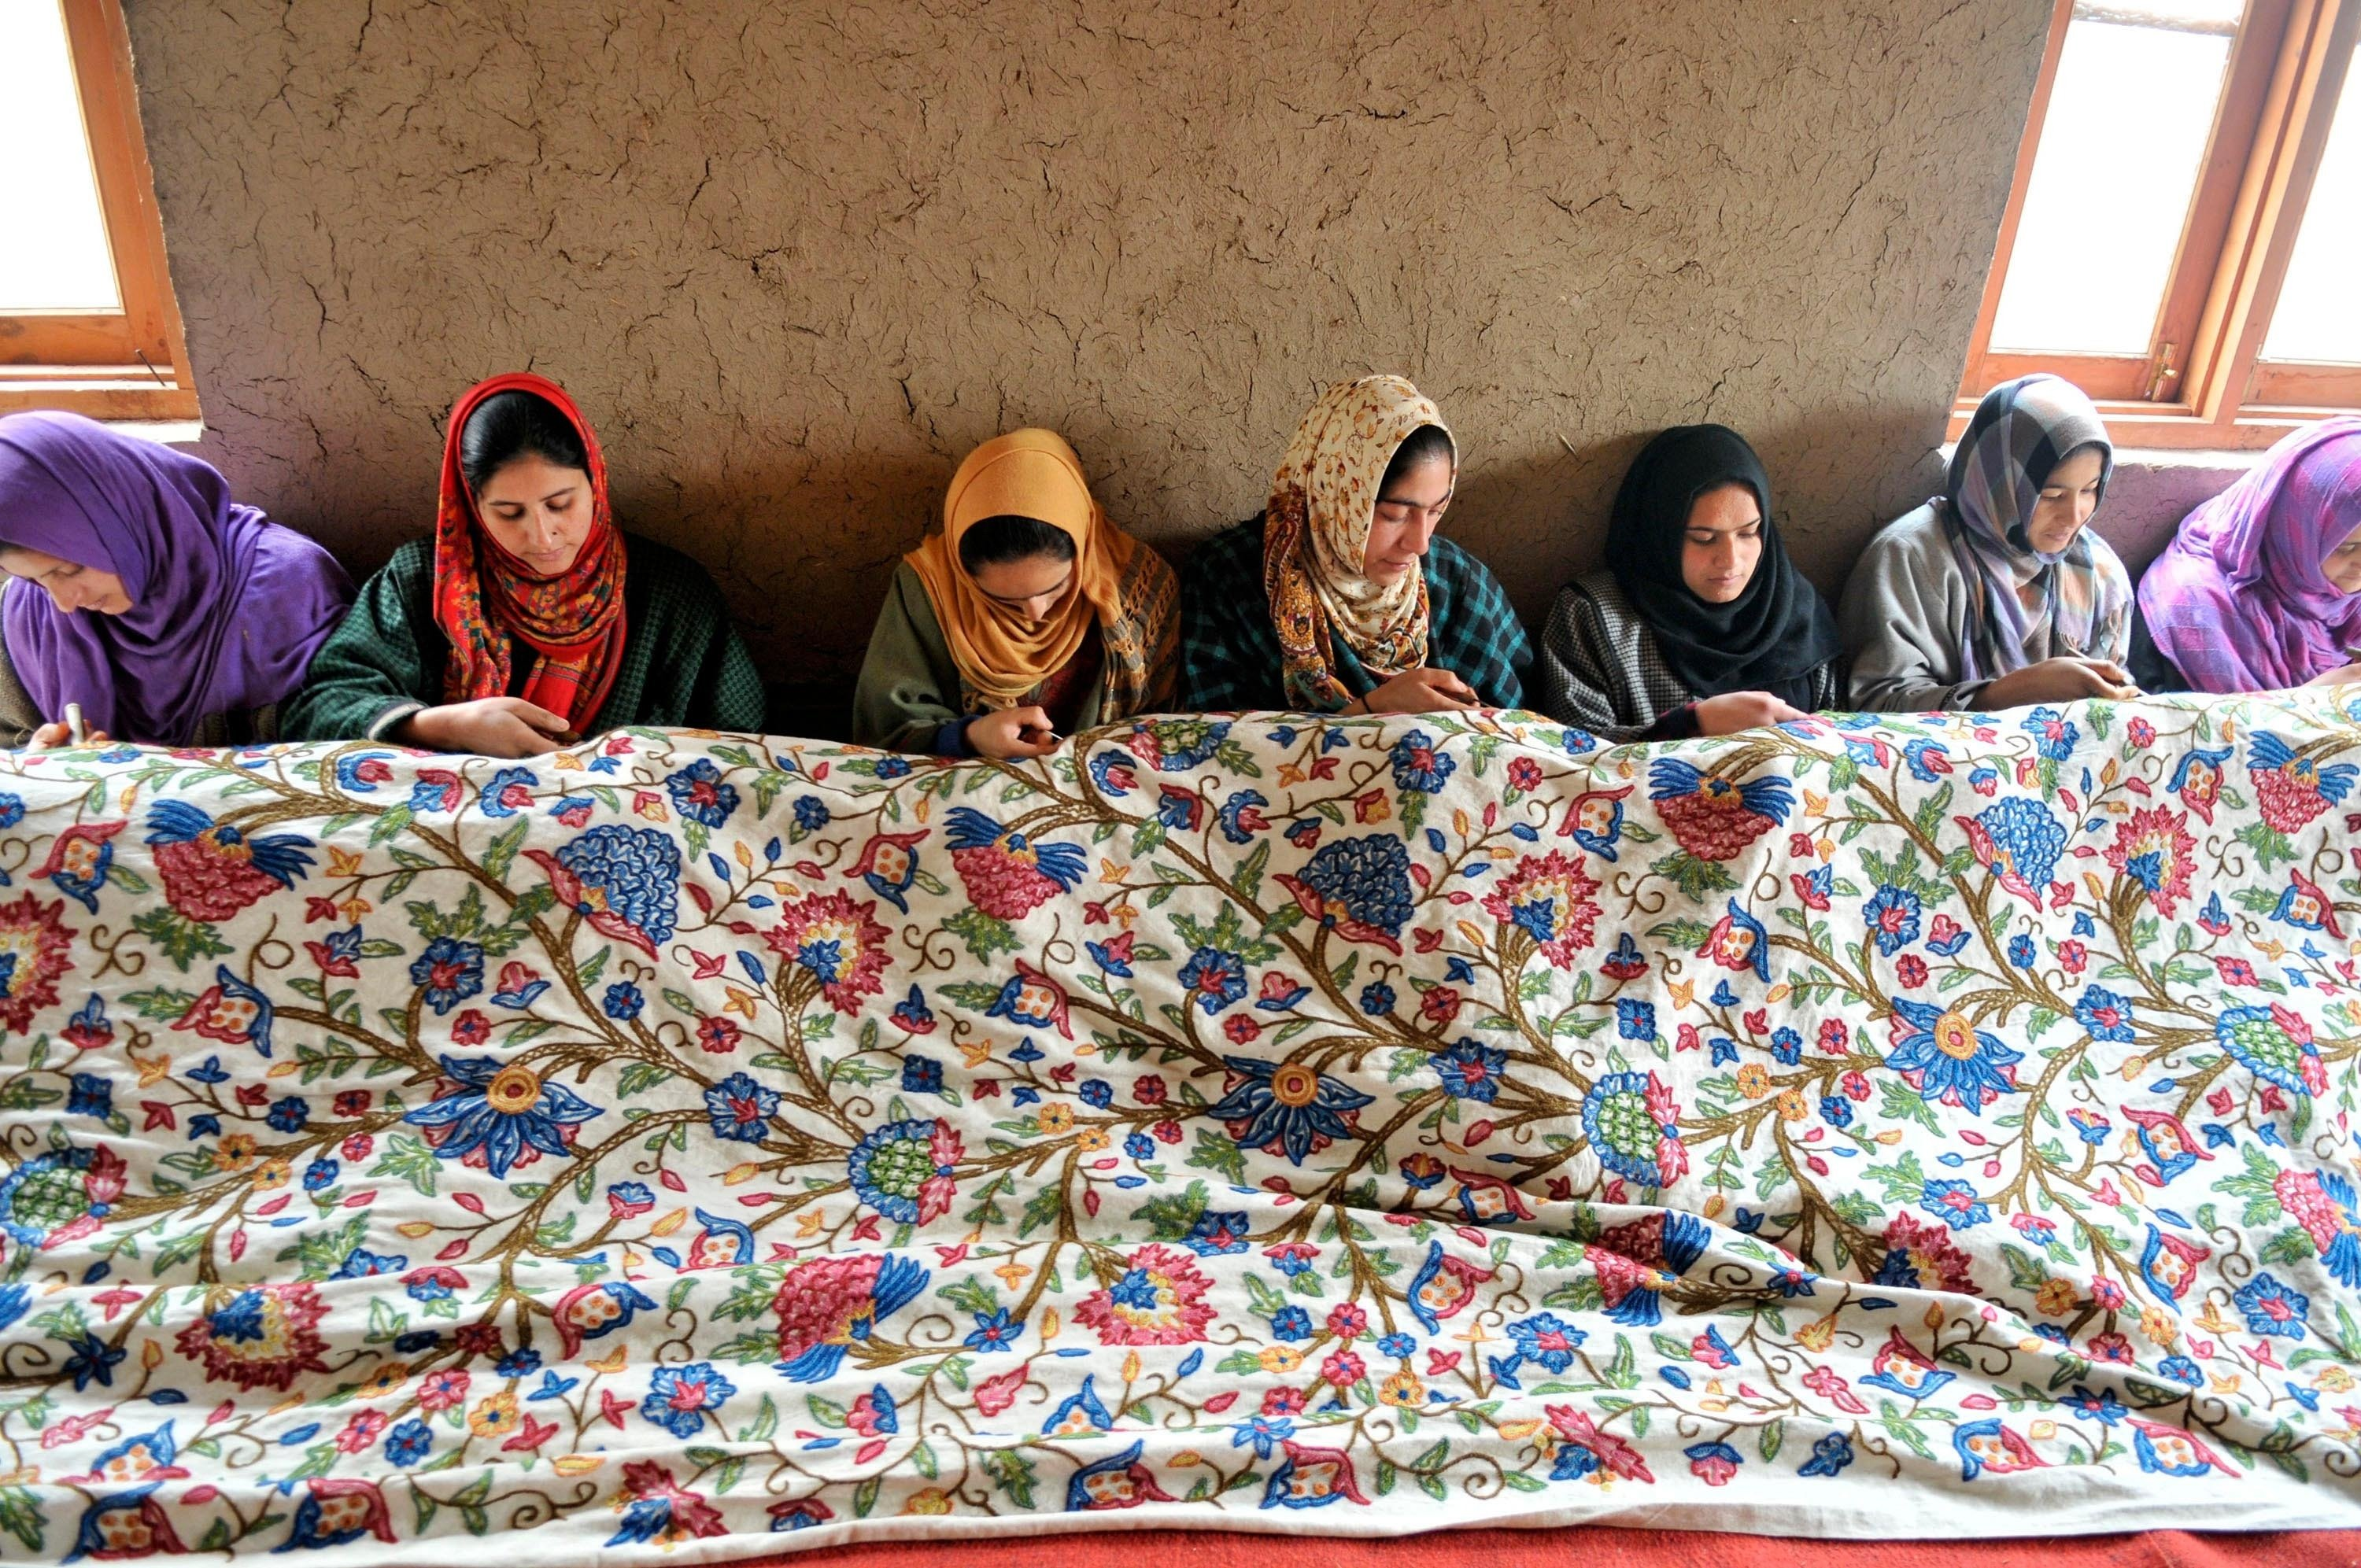 Kashmiri women do intricate embroidery on window curtains at a state-run center on Dec. 9, 2015. (Getty Images)